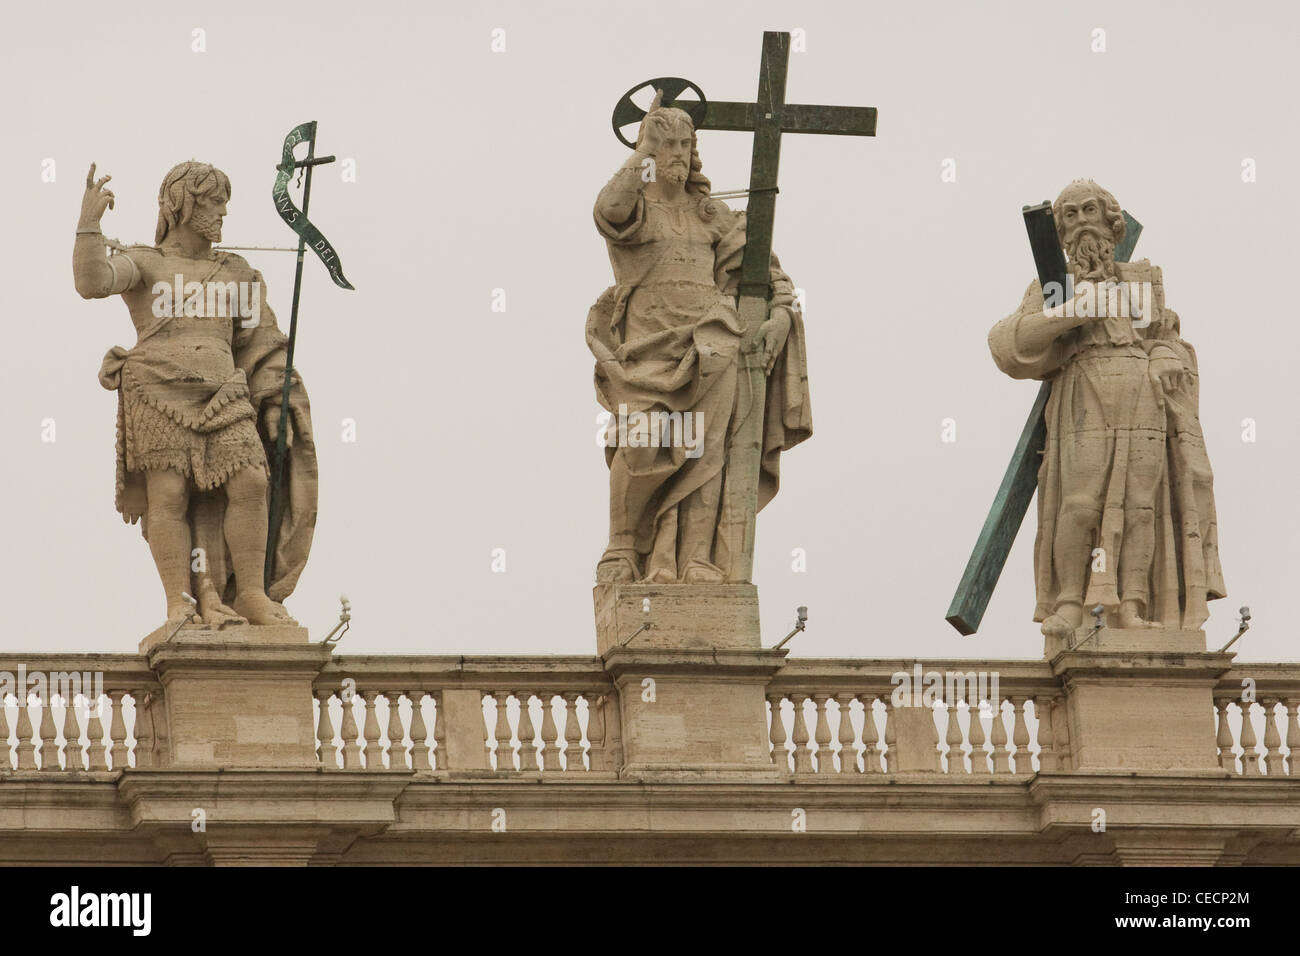 Statues of Jesus carrying the cross on the top of St. Peter's Basilica Basilica di San Pietro Vatican city Rome Stock Photo